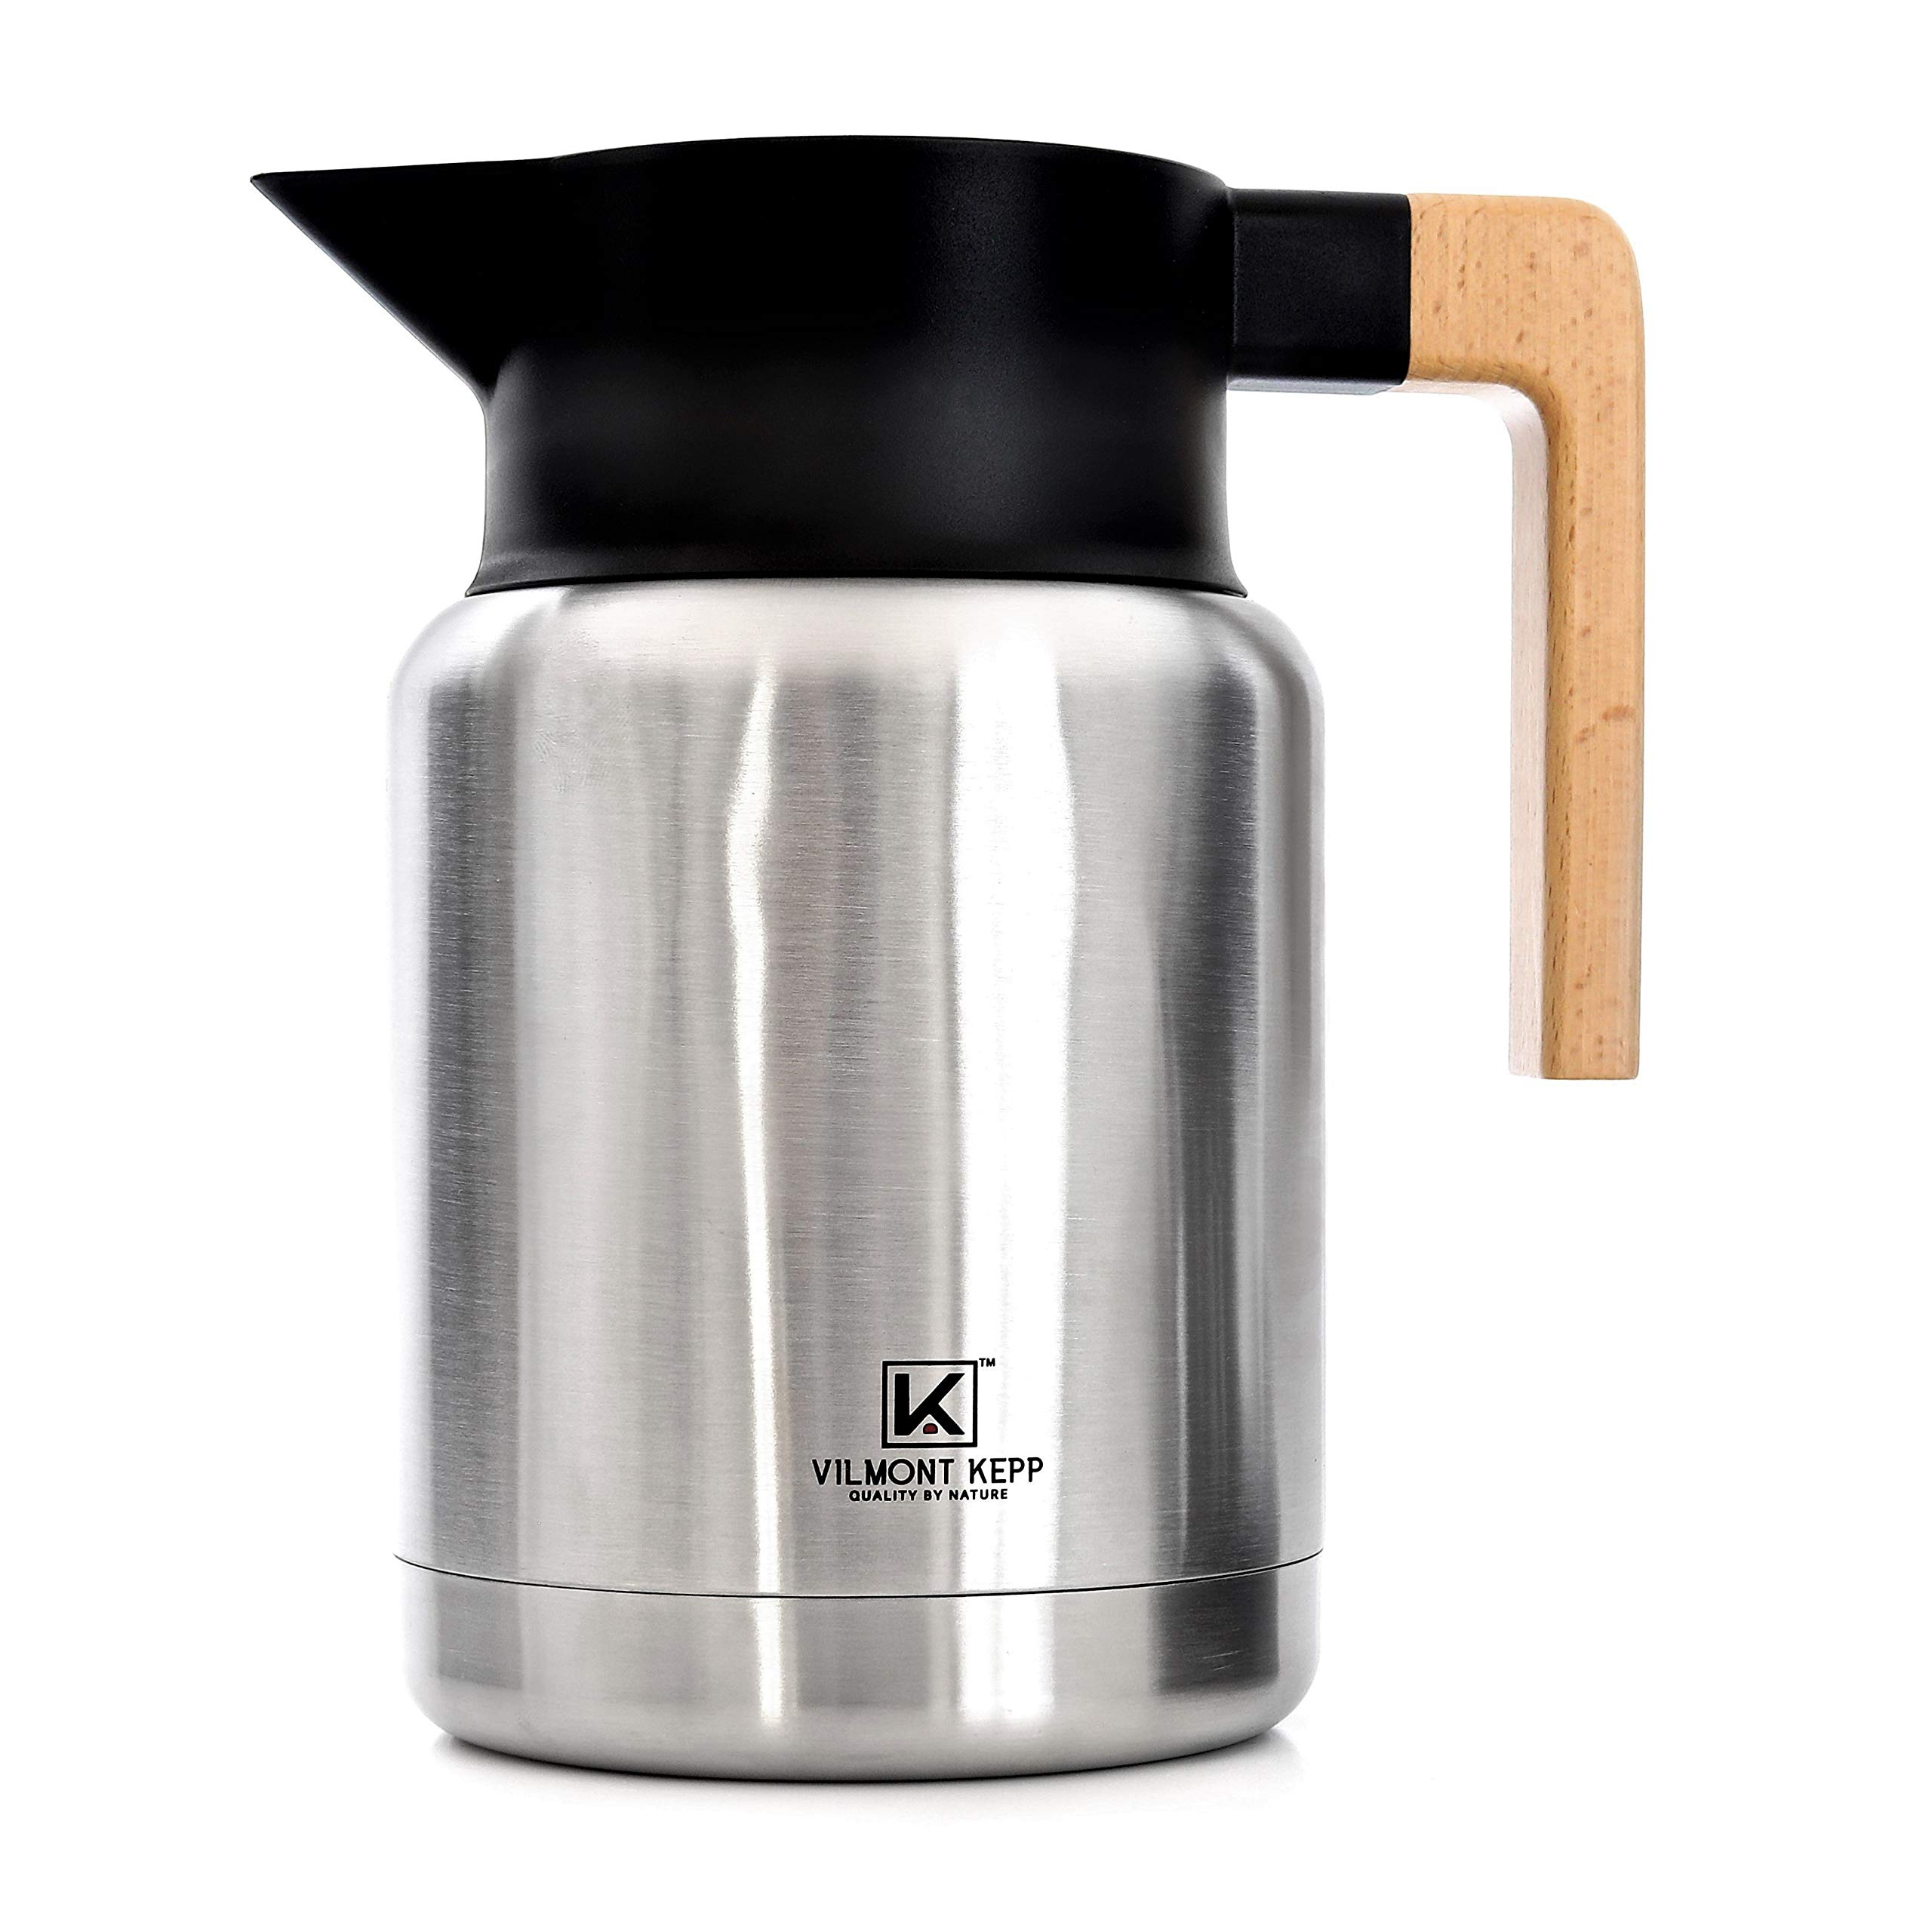 Premium Sturdy 50 oz Thermal Vacuum Carafe for Coffee Tea, Hot or Cold Drinks, Double Walled Stainless Steel Insulated, Beechwood Handle No-Drips Wide Mouth in a Gift Box by Vilmont Kepp